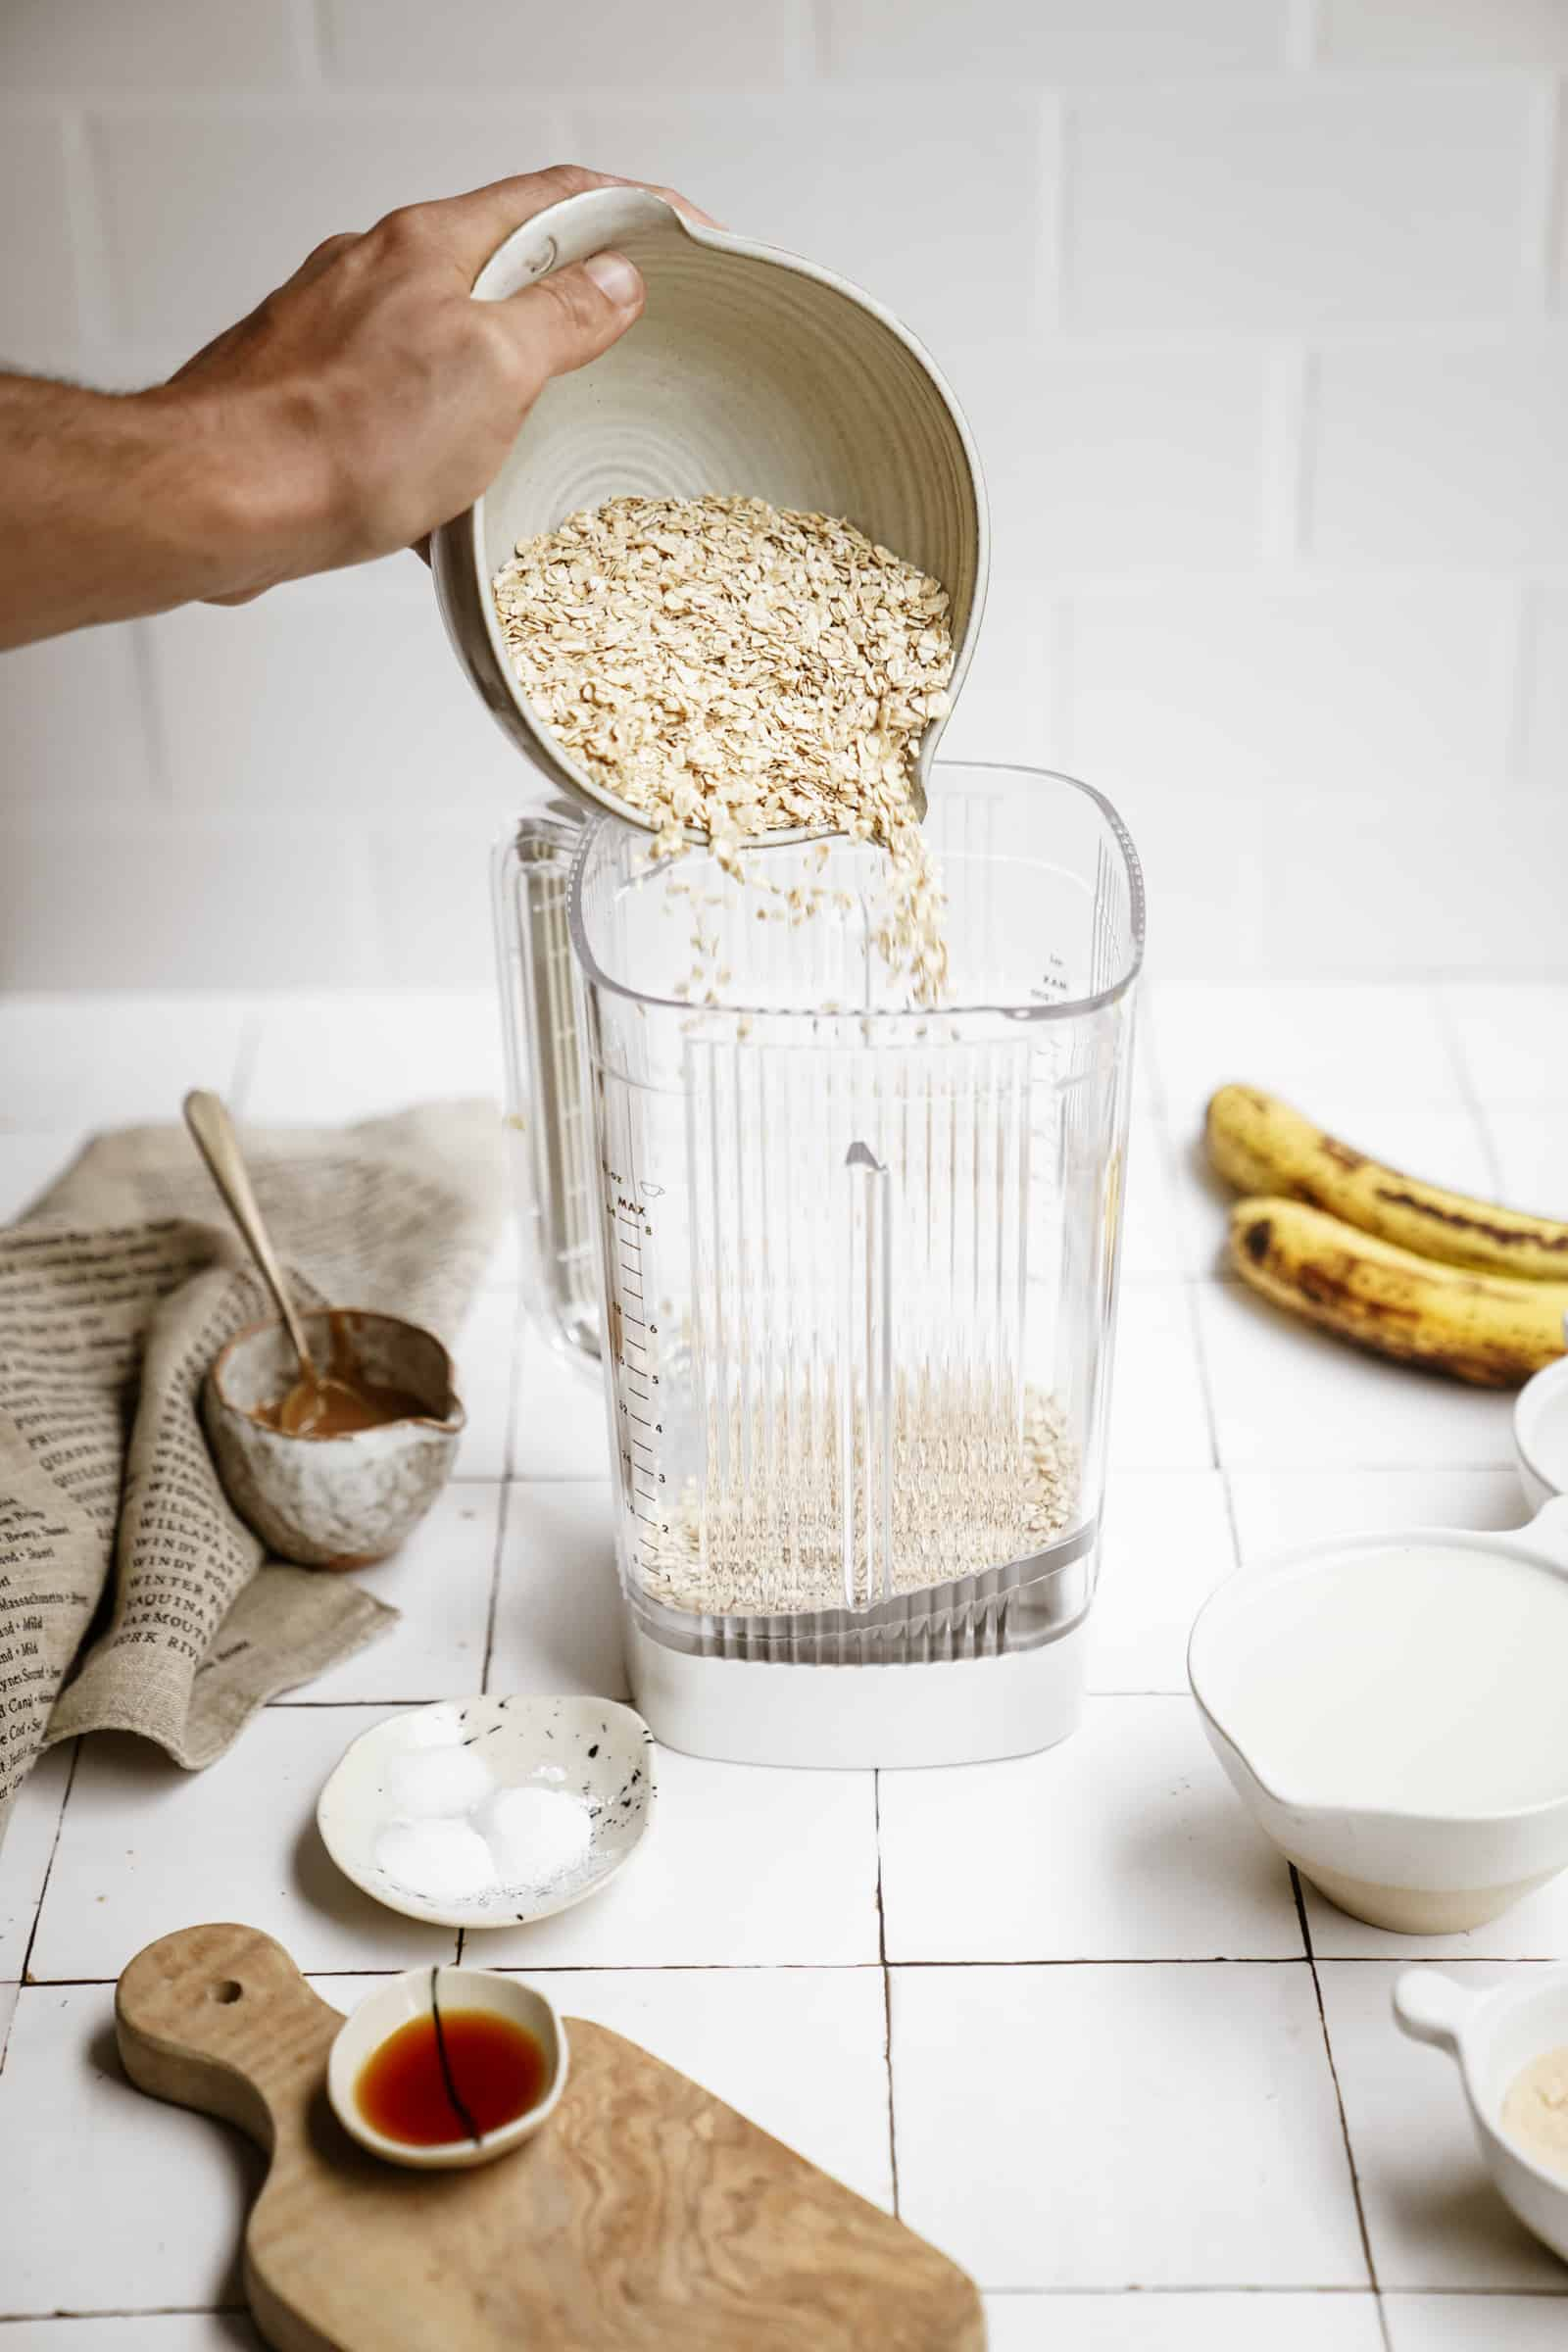 Oats being added into a blender for peanut butter banana pancakes